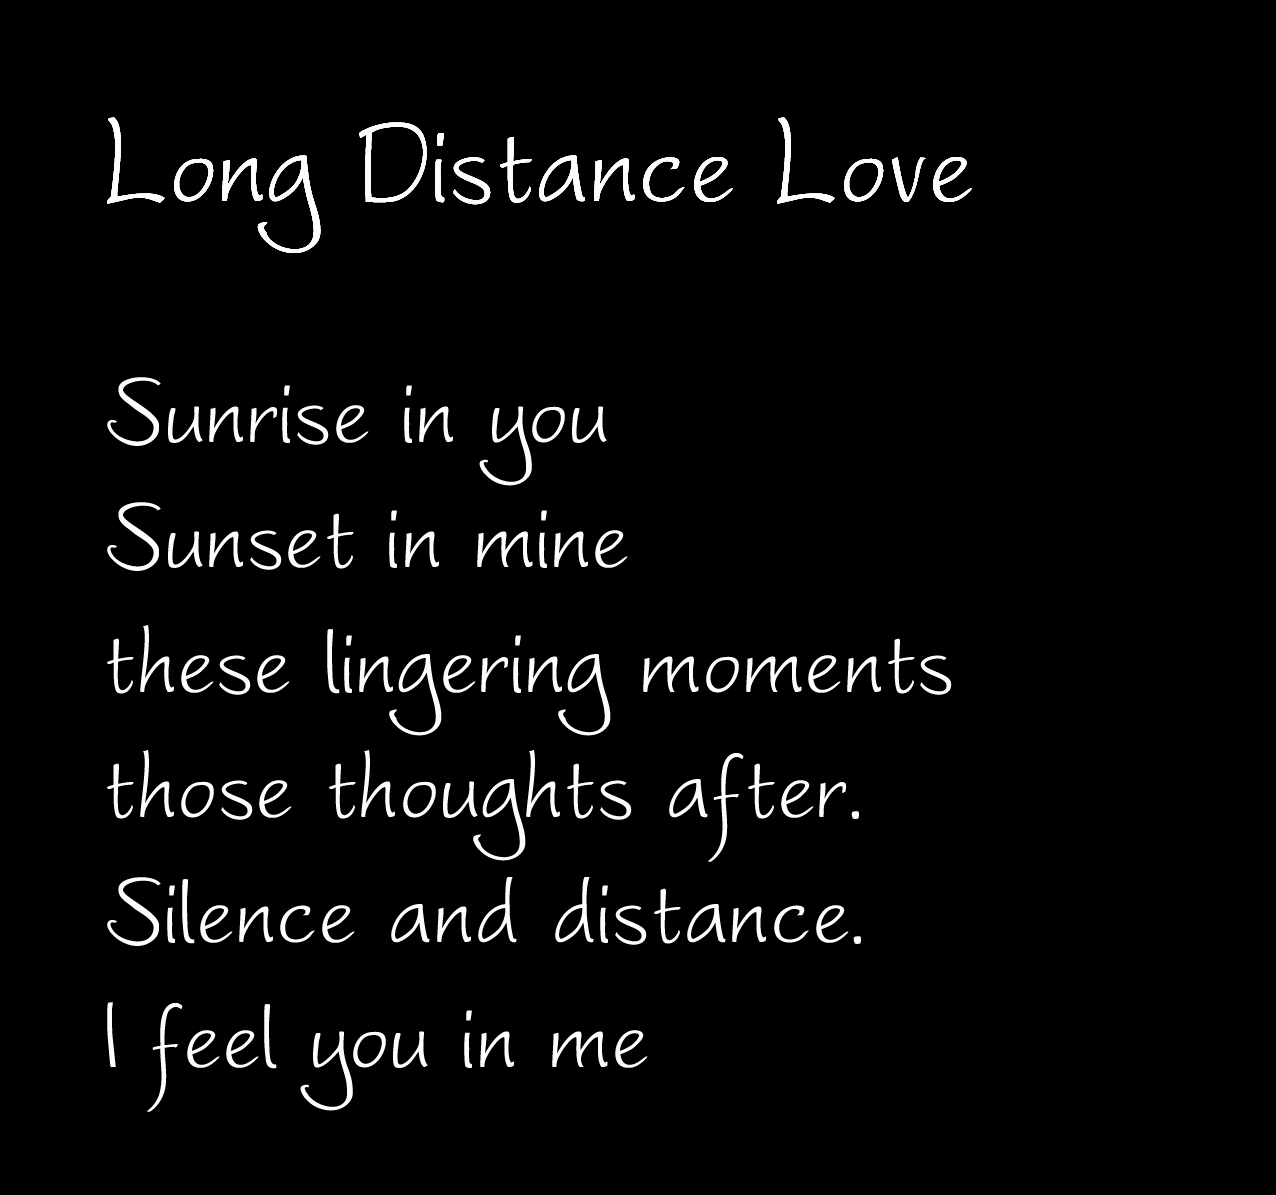 Loneliness Love Quotes Loneliness Love Quotes Loneliness Quotes Loneliness Images